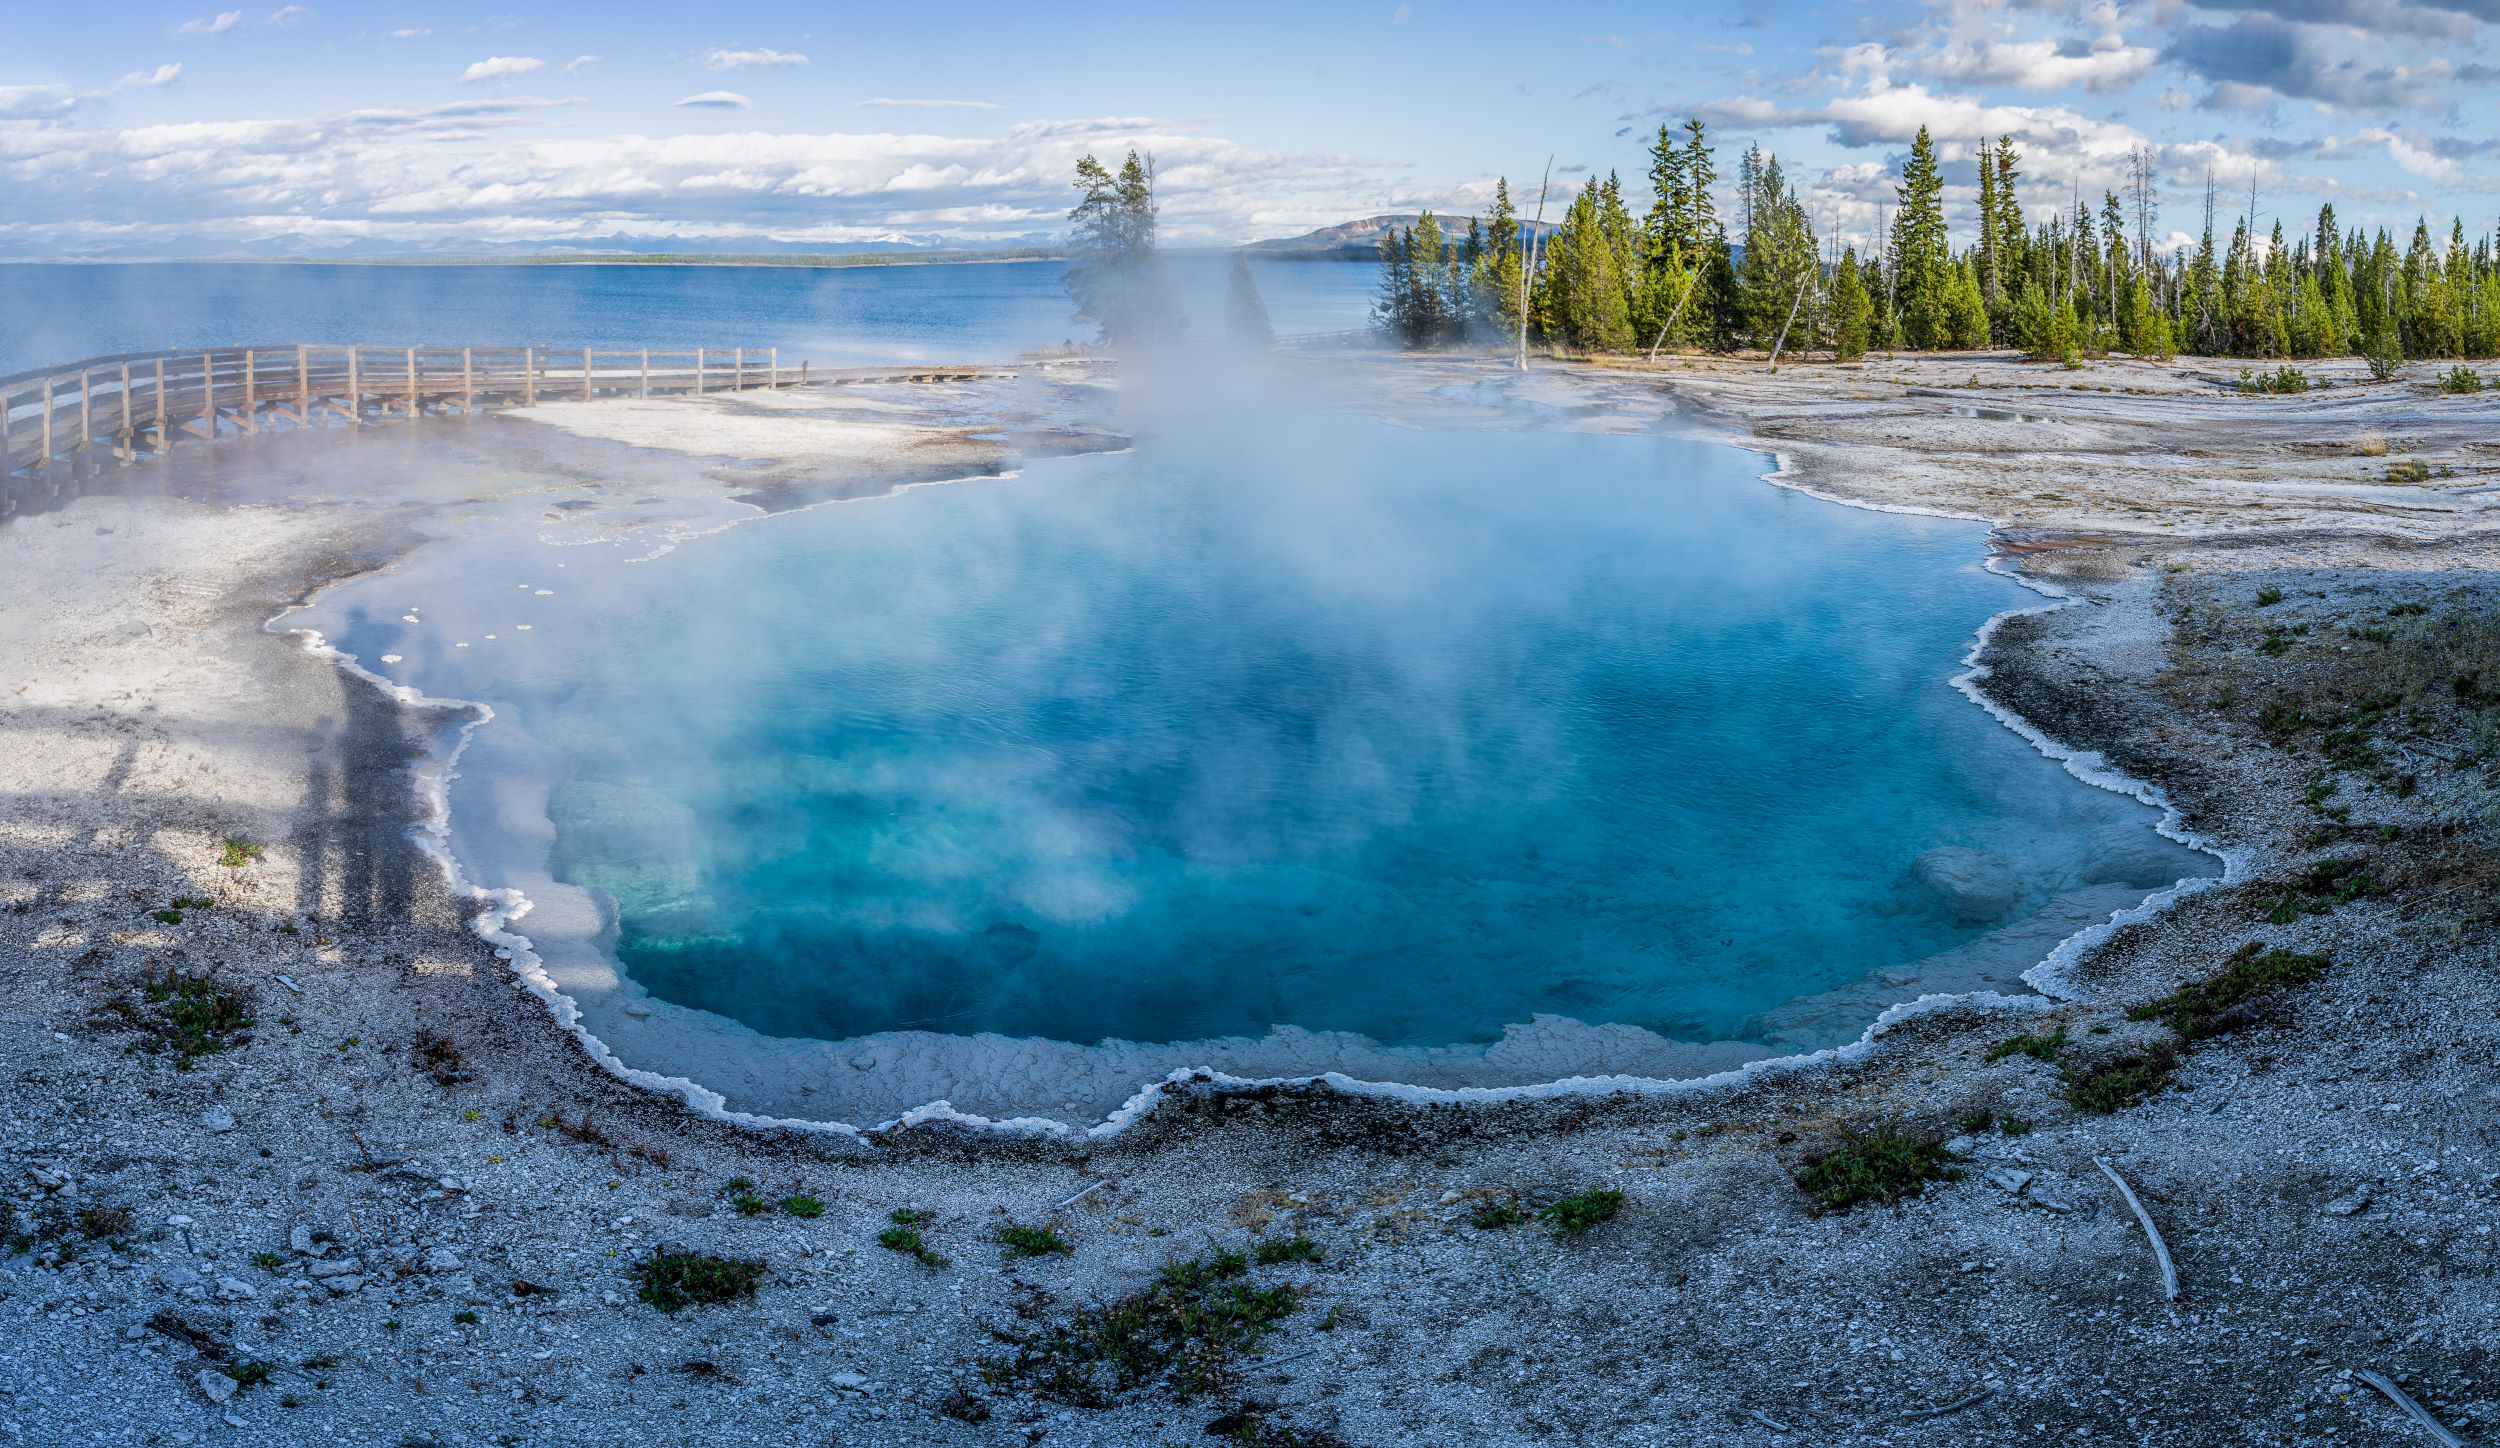 West Thumb Area, Yellowstone National Park, Wyoming, USA